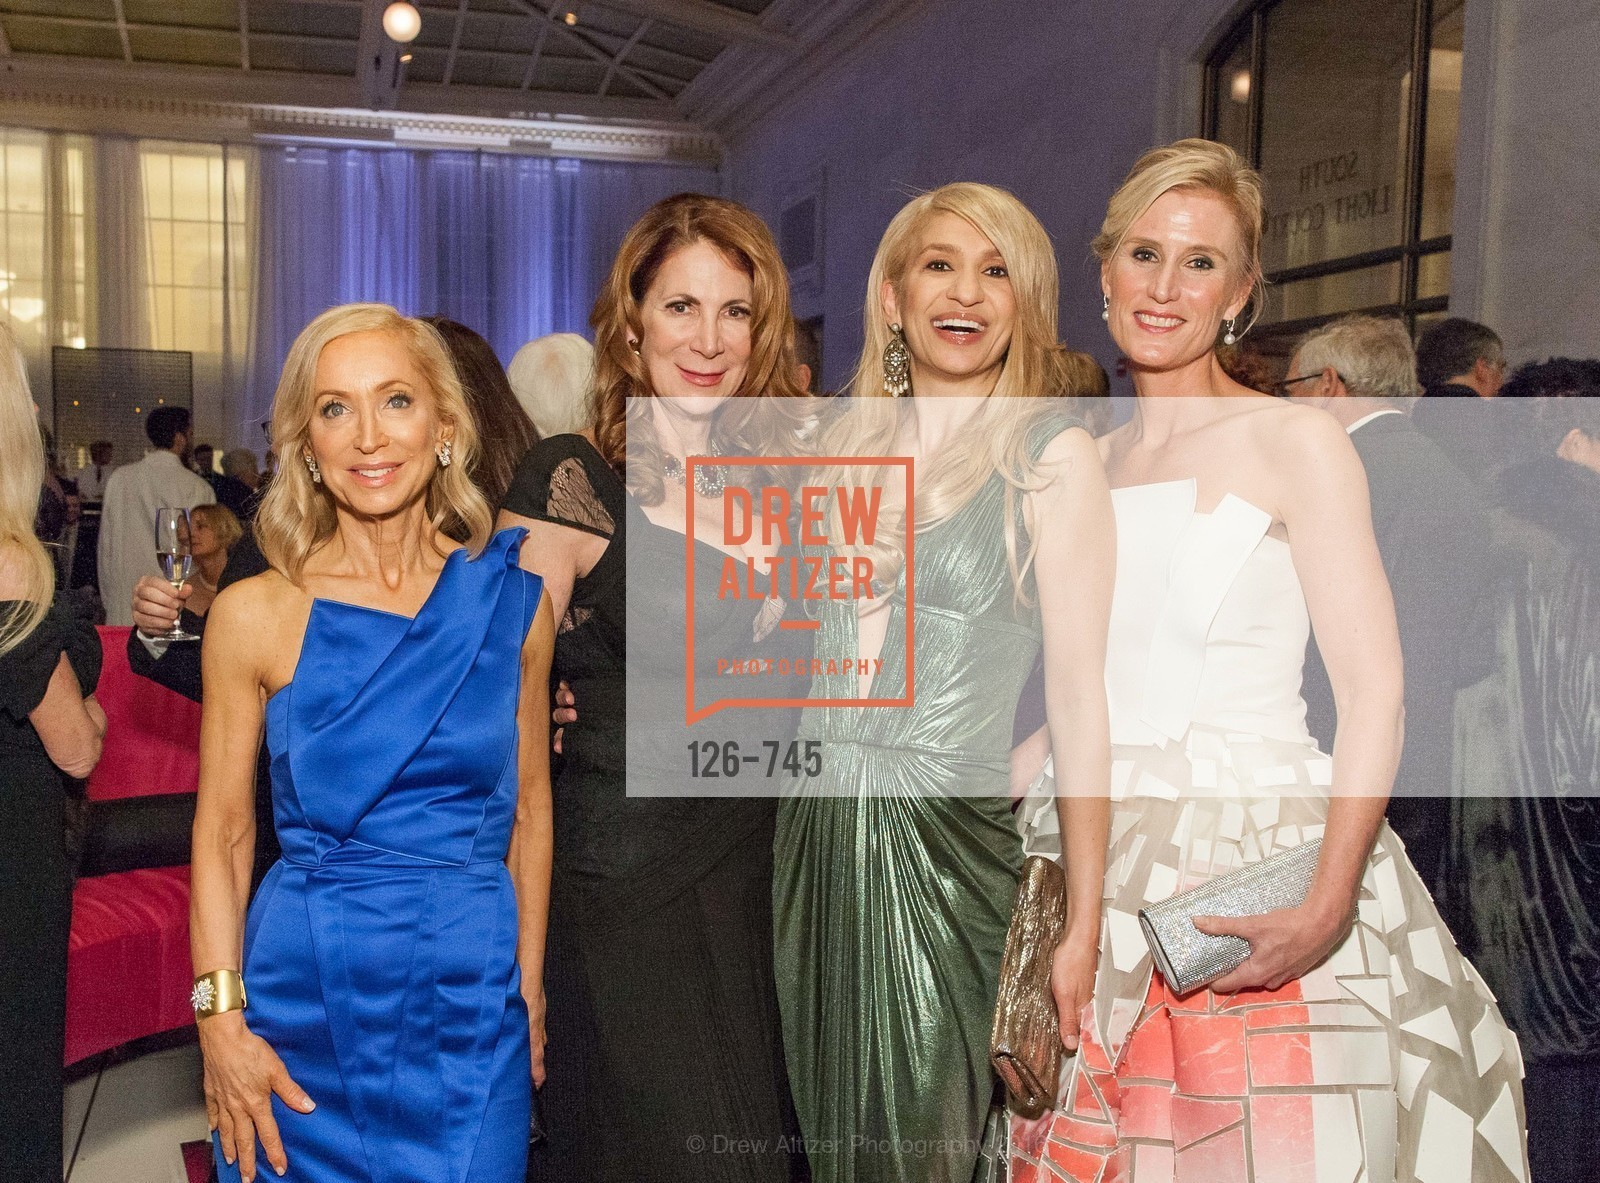 Shelley Gordon, Patricia Ferrin Loucks, Navid Armstrong, Alison Mauze, San Francisco Ballet 2016 Opening Night Gala Part 2, San Francisco City Hall, January 21st, 2016,Drew Altizer, Drew Altizer Photography, full-service agency, private events, San Francisco photographer, photographer california